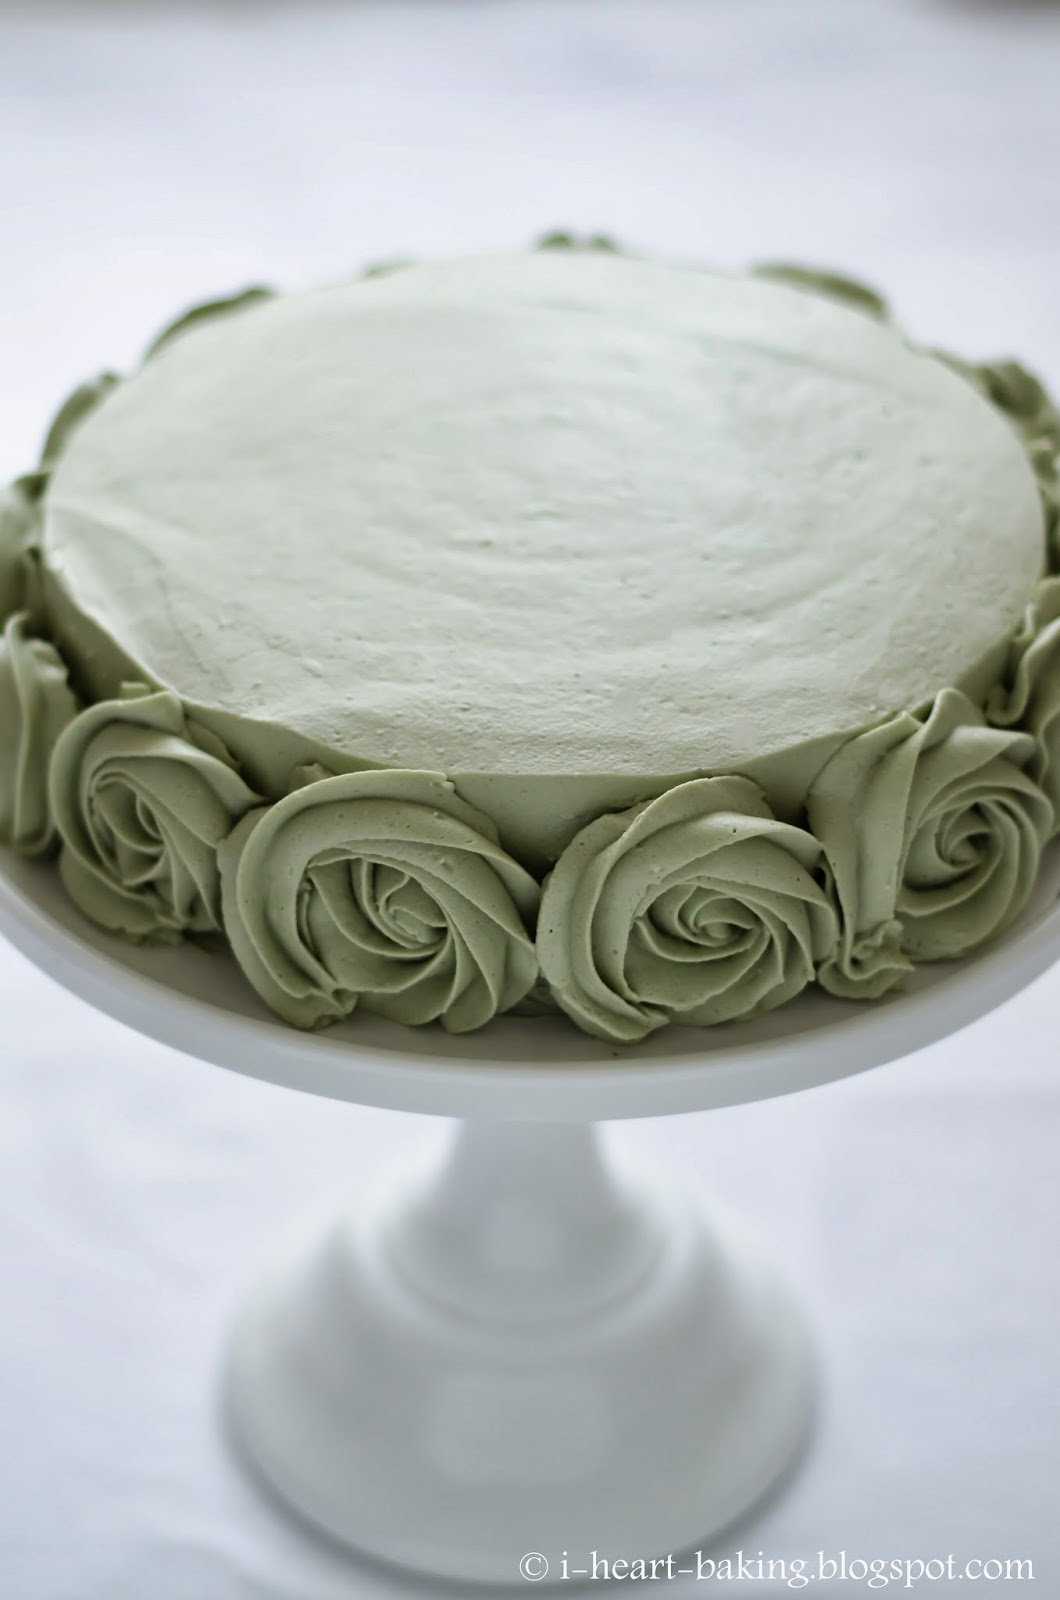 Green Tea Ice Cream Birthday Cake Image Inspiration of Cake and